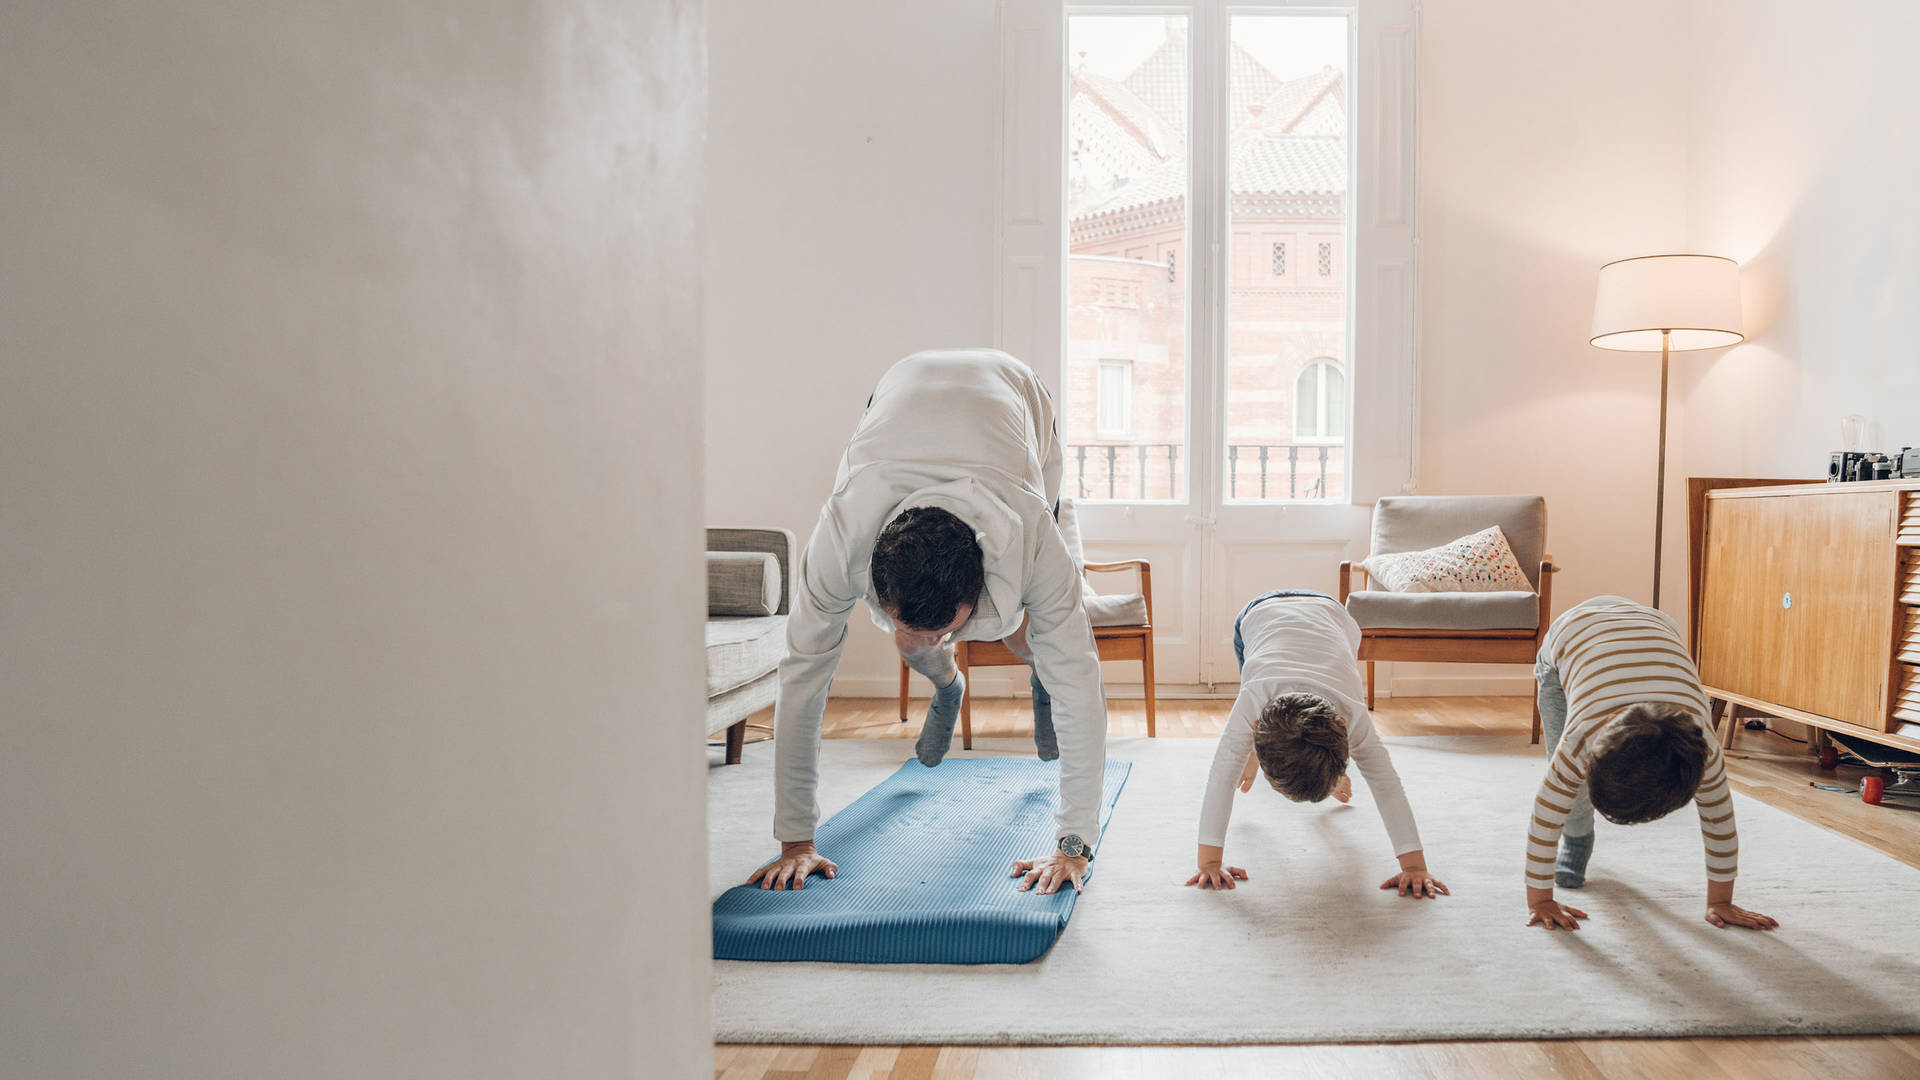 Exercising with children at home